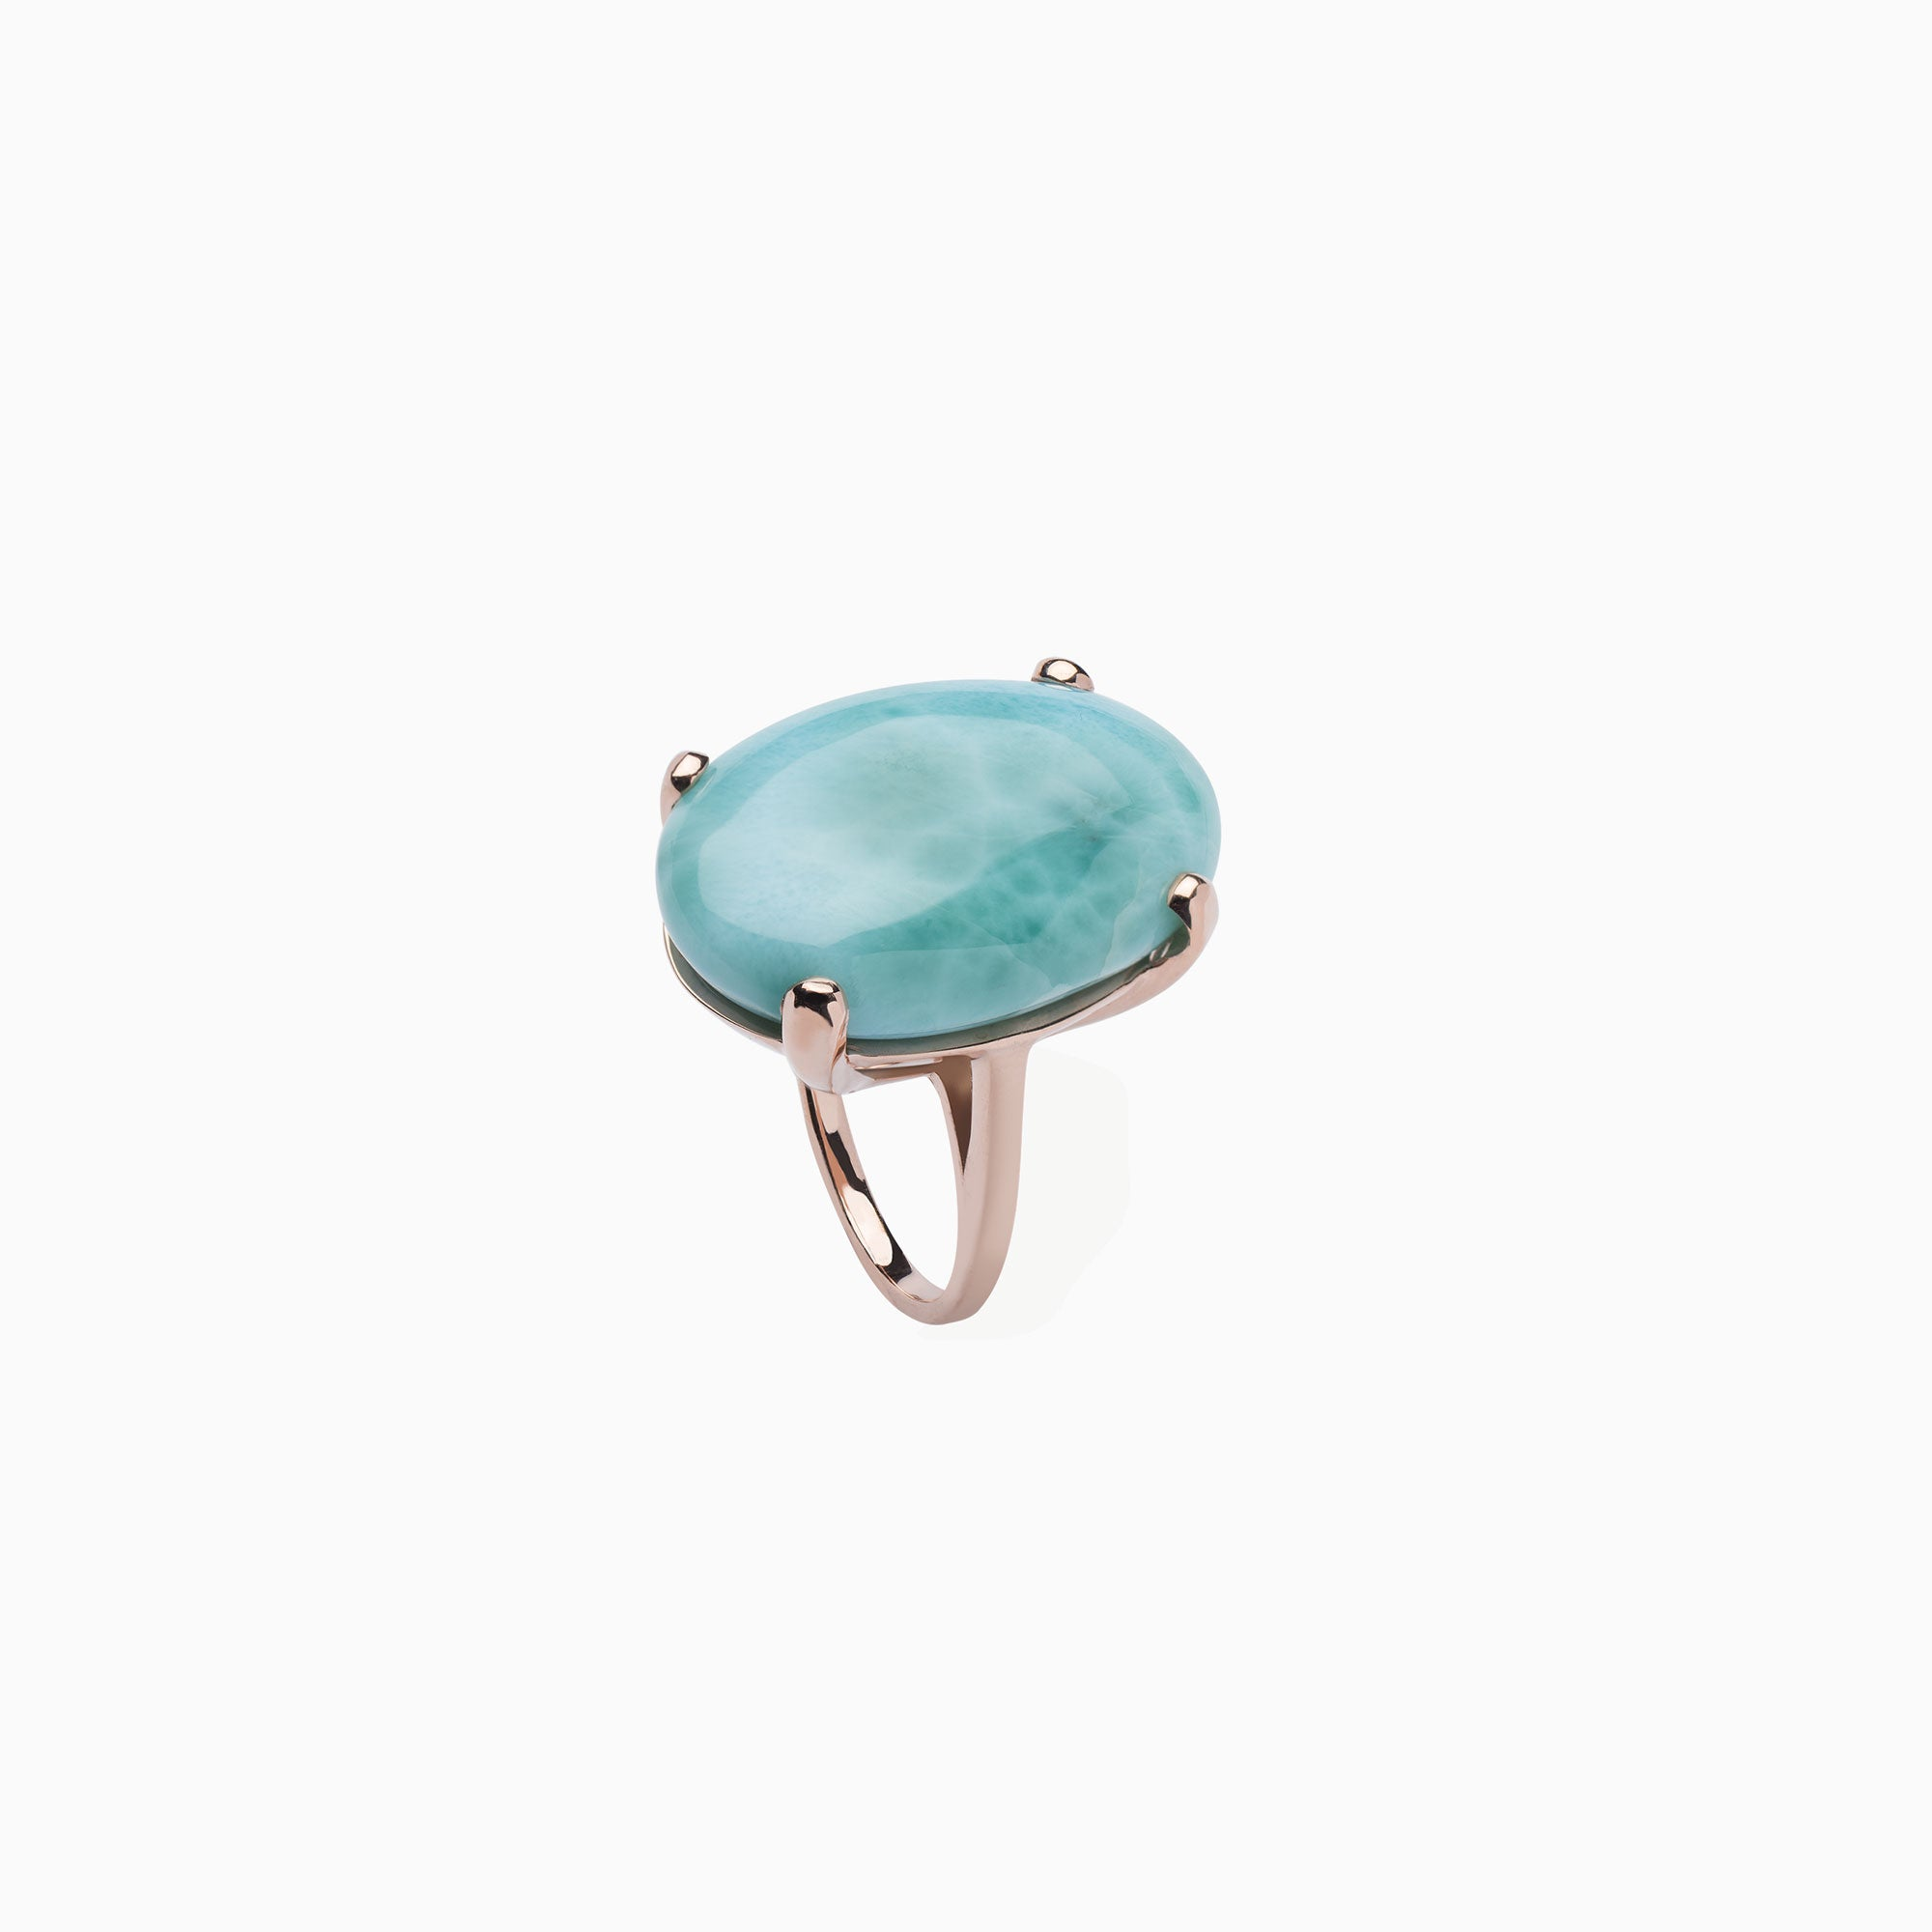 Nessa Designs Jewelry | Rings | Larimar Ring